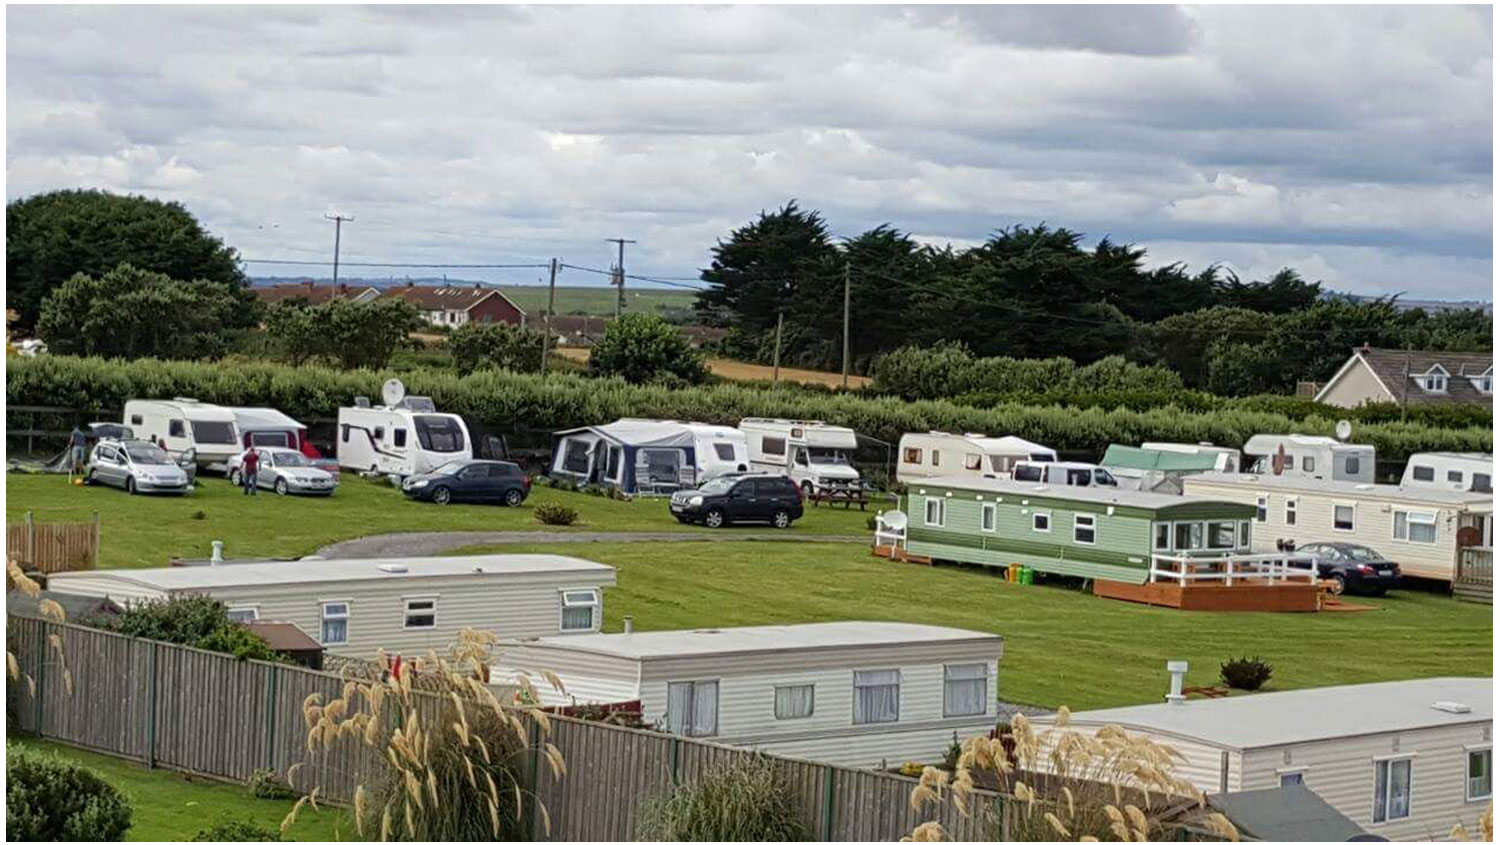 Aerial View Lynders Mobile Home Park, Portrane Donabate, North County Dublin, Fingal